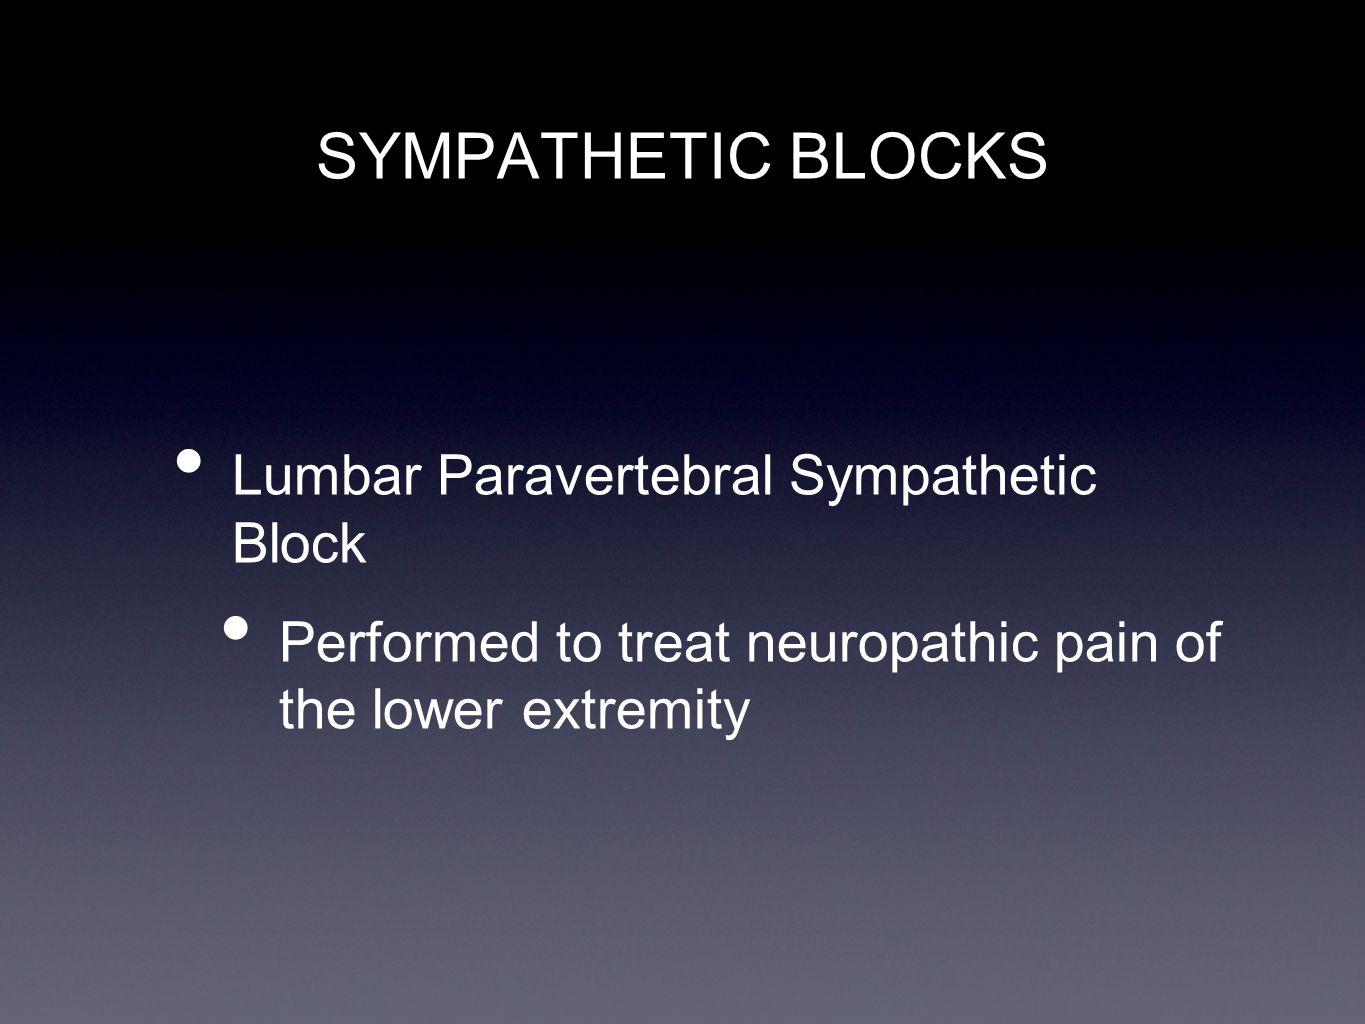 SYMPATHETIC BLOCKS Lumbar Paravertebral Sympathetic Block